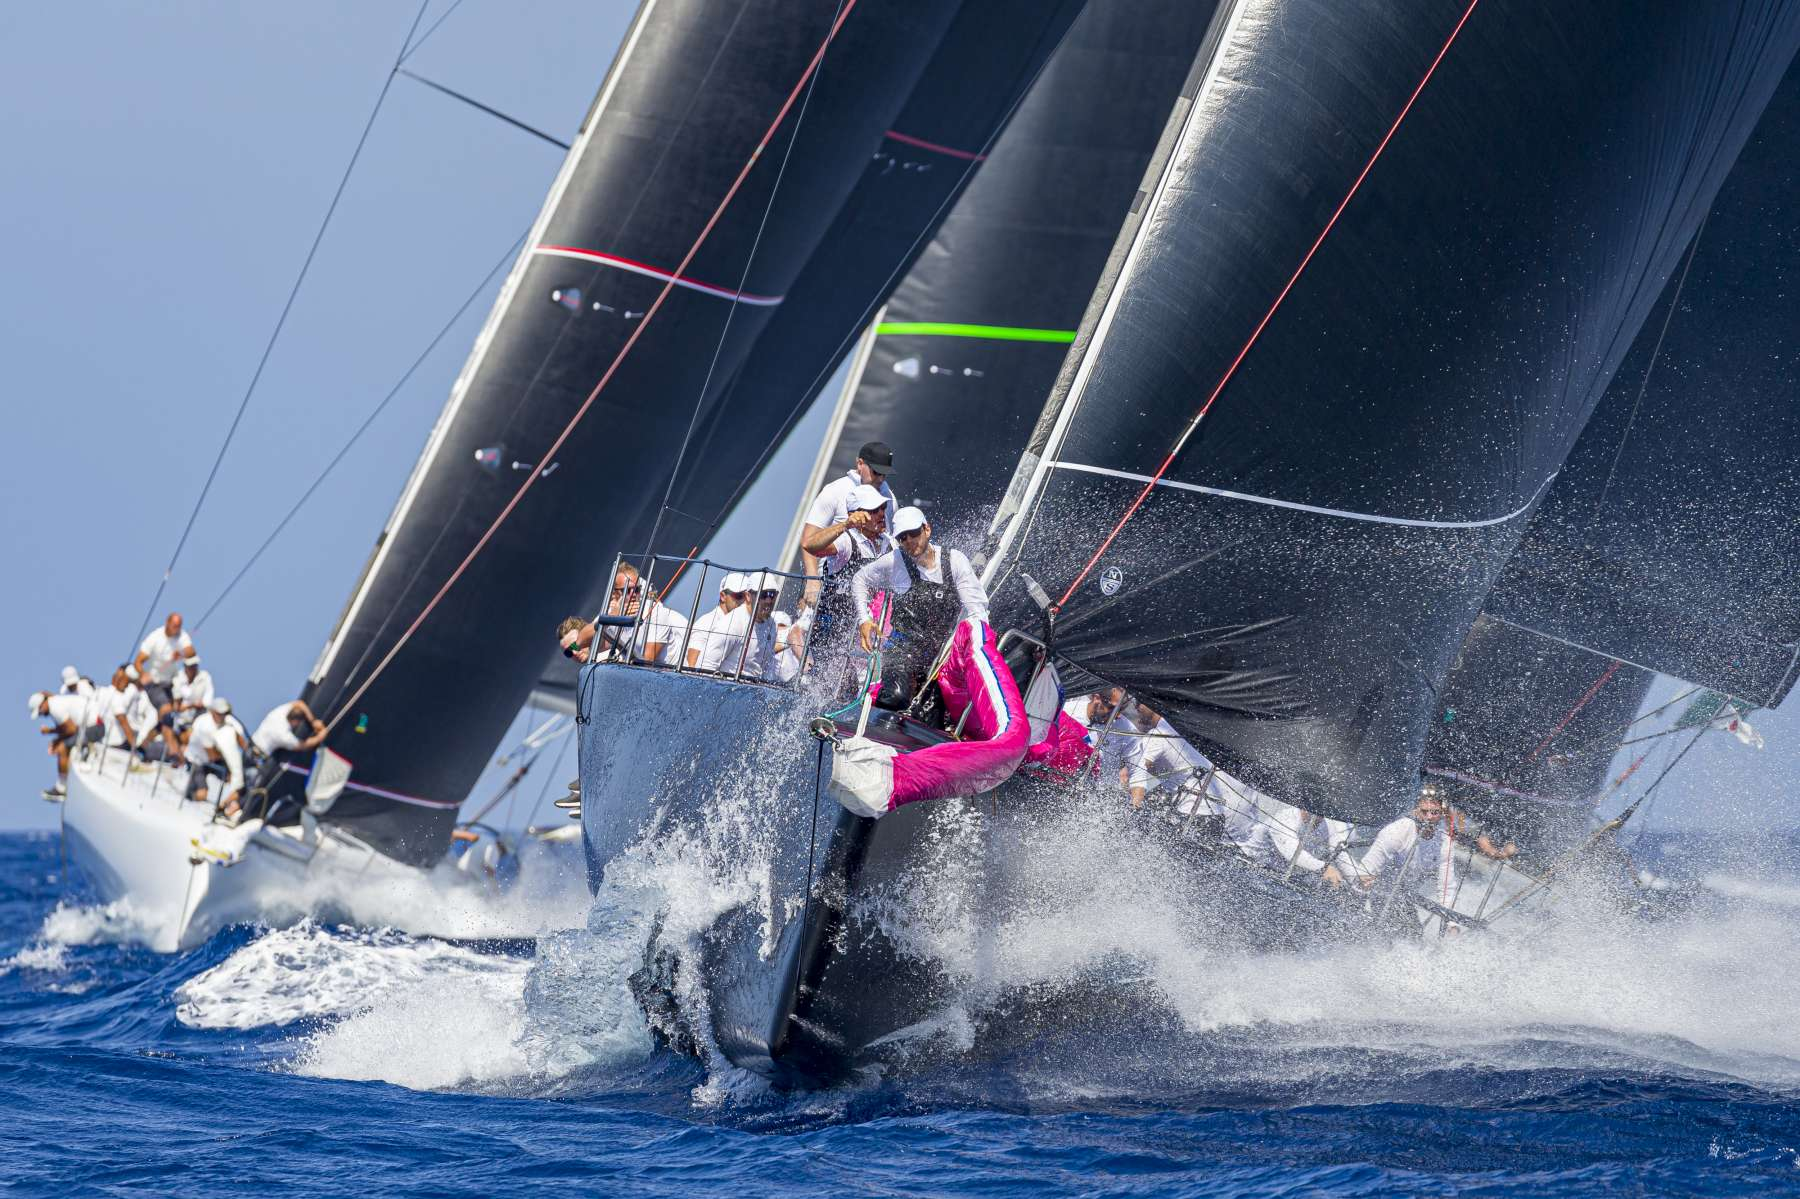 Porto Cervo provides perfect start for the Maxi Yacht Rolex Cup - NEWS - Yacht Club Costa Smeralda